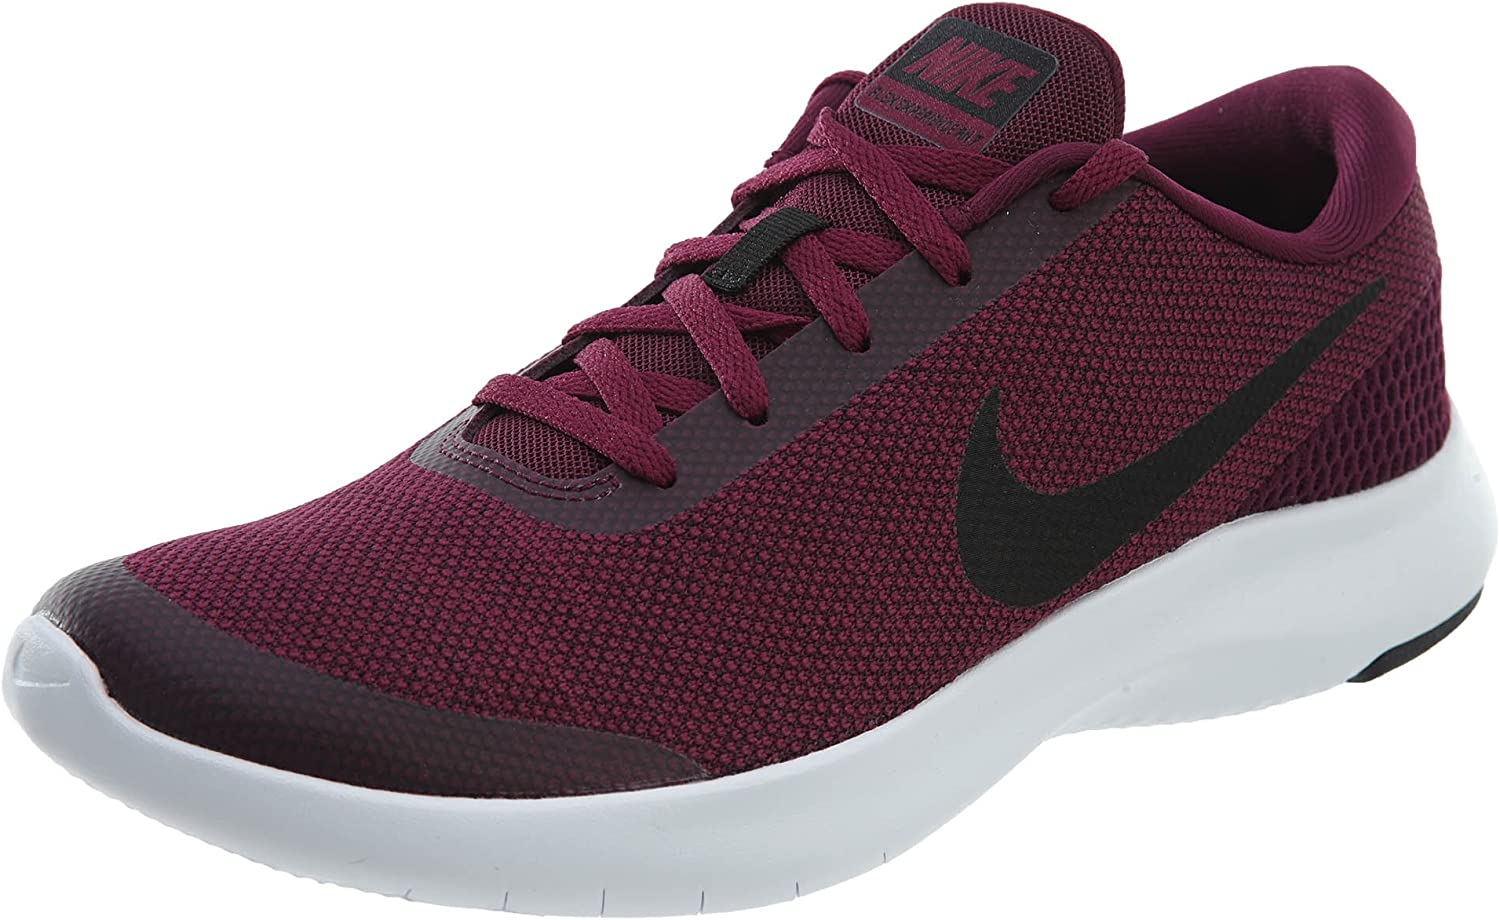 NIKE Men s Flex Experience RN 7 Running Shoe